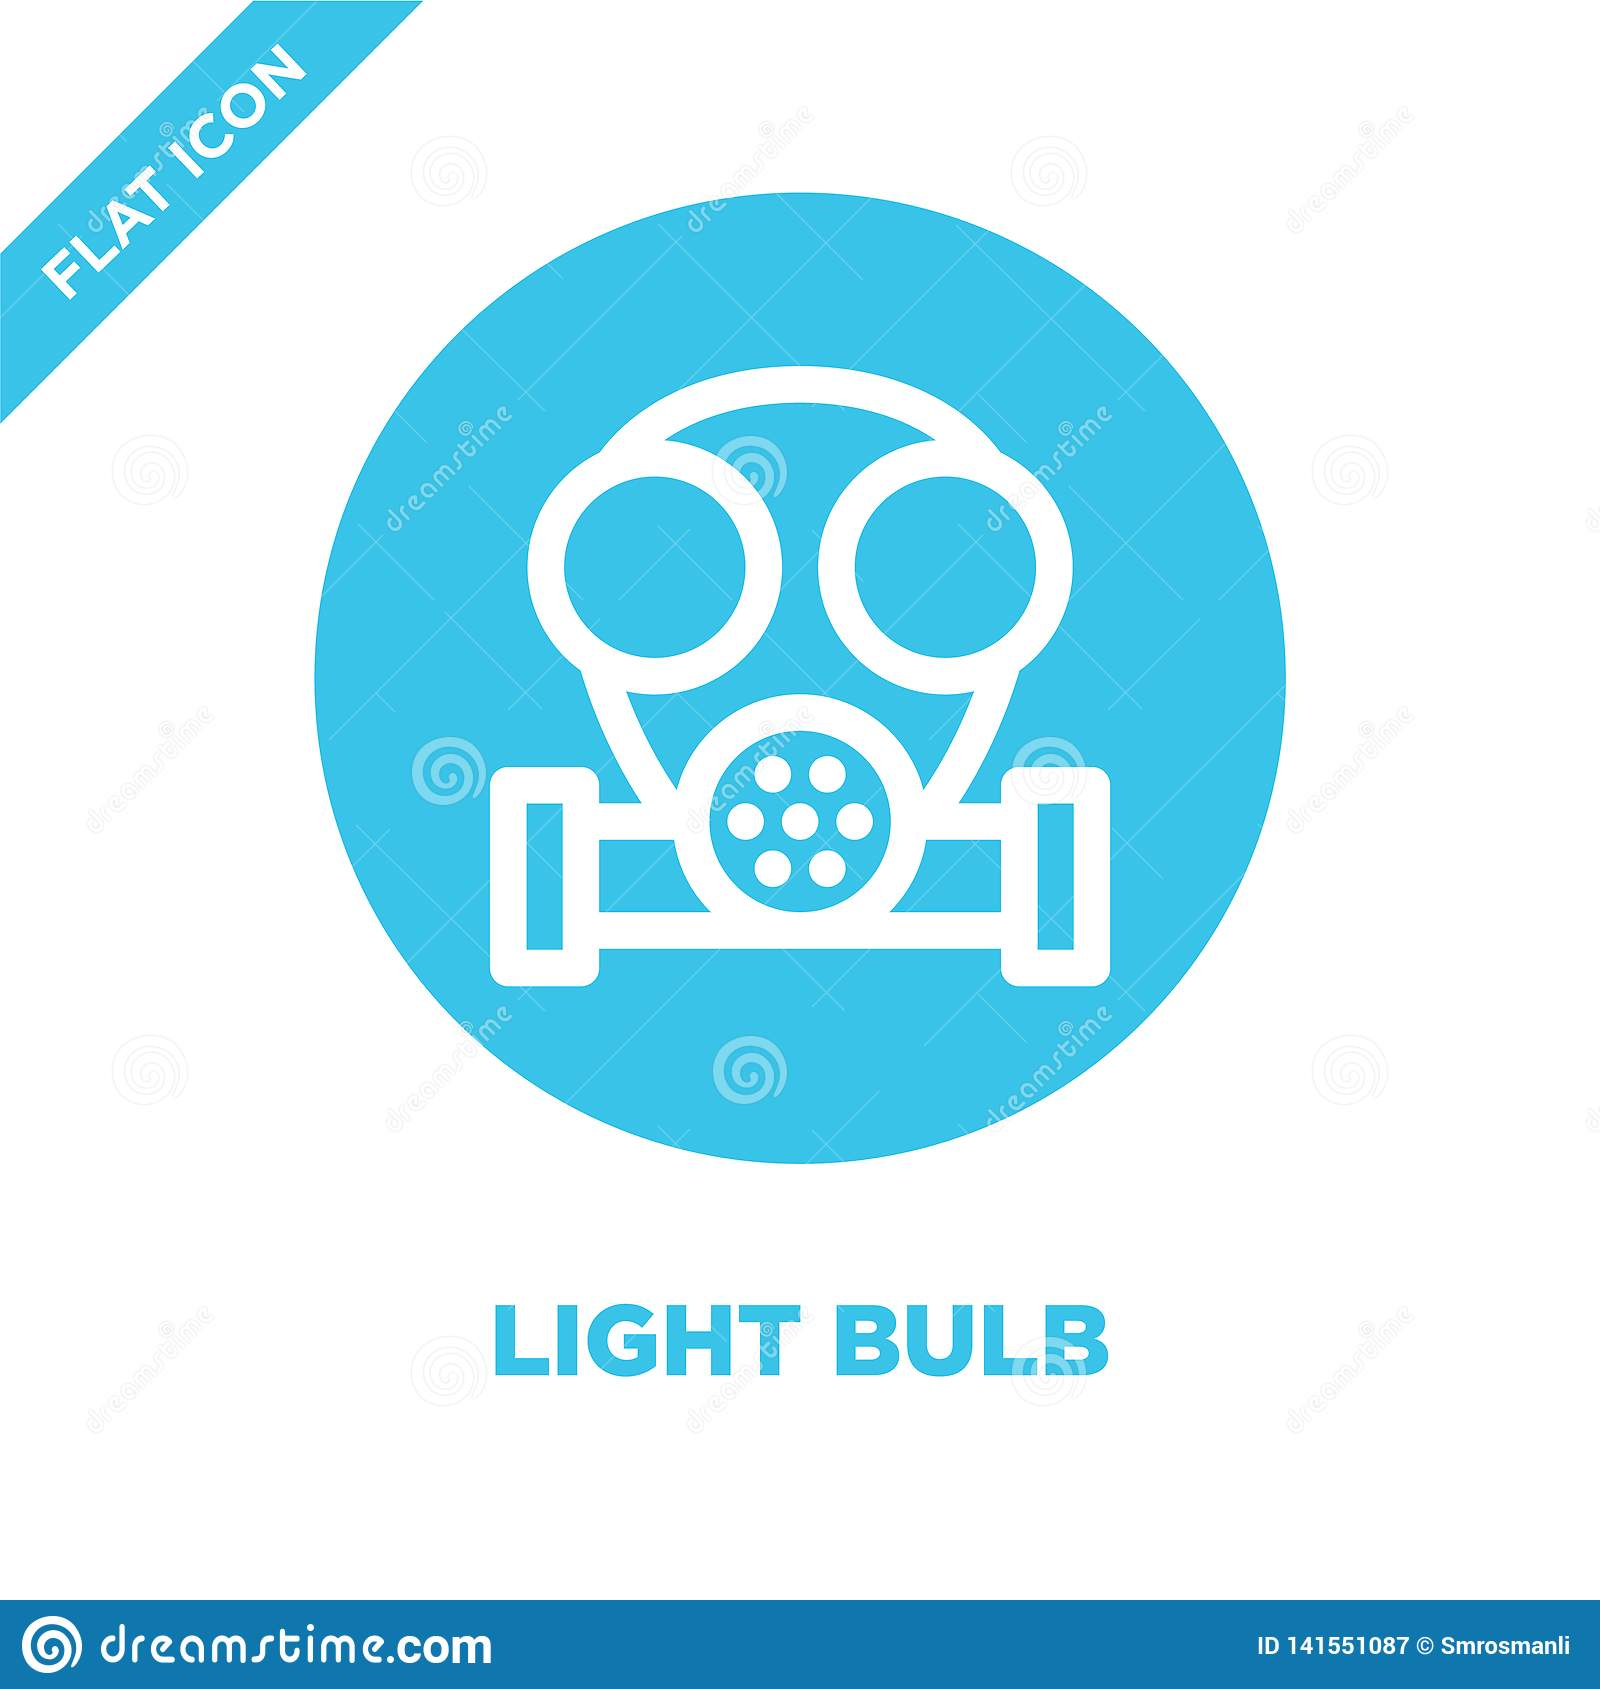 light bulb icon vector. Thin line light bulb outline icon vector illustration.light bulb symbol for use on web and mobile apps,